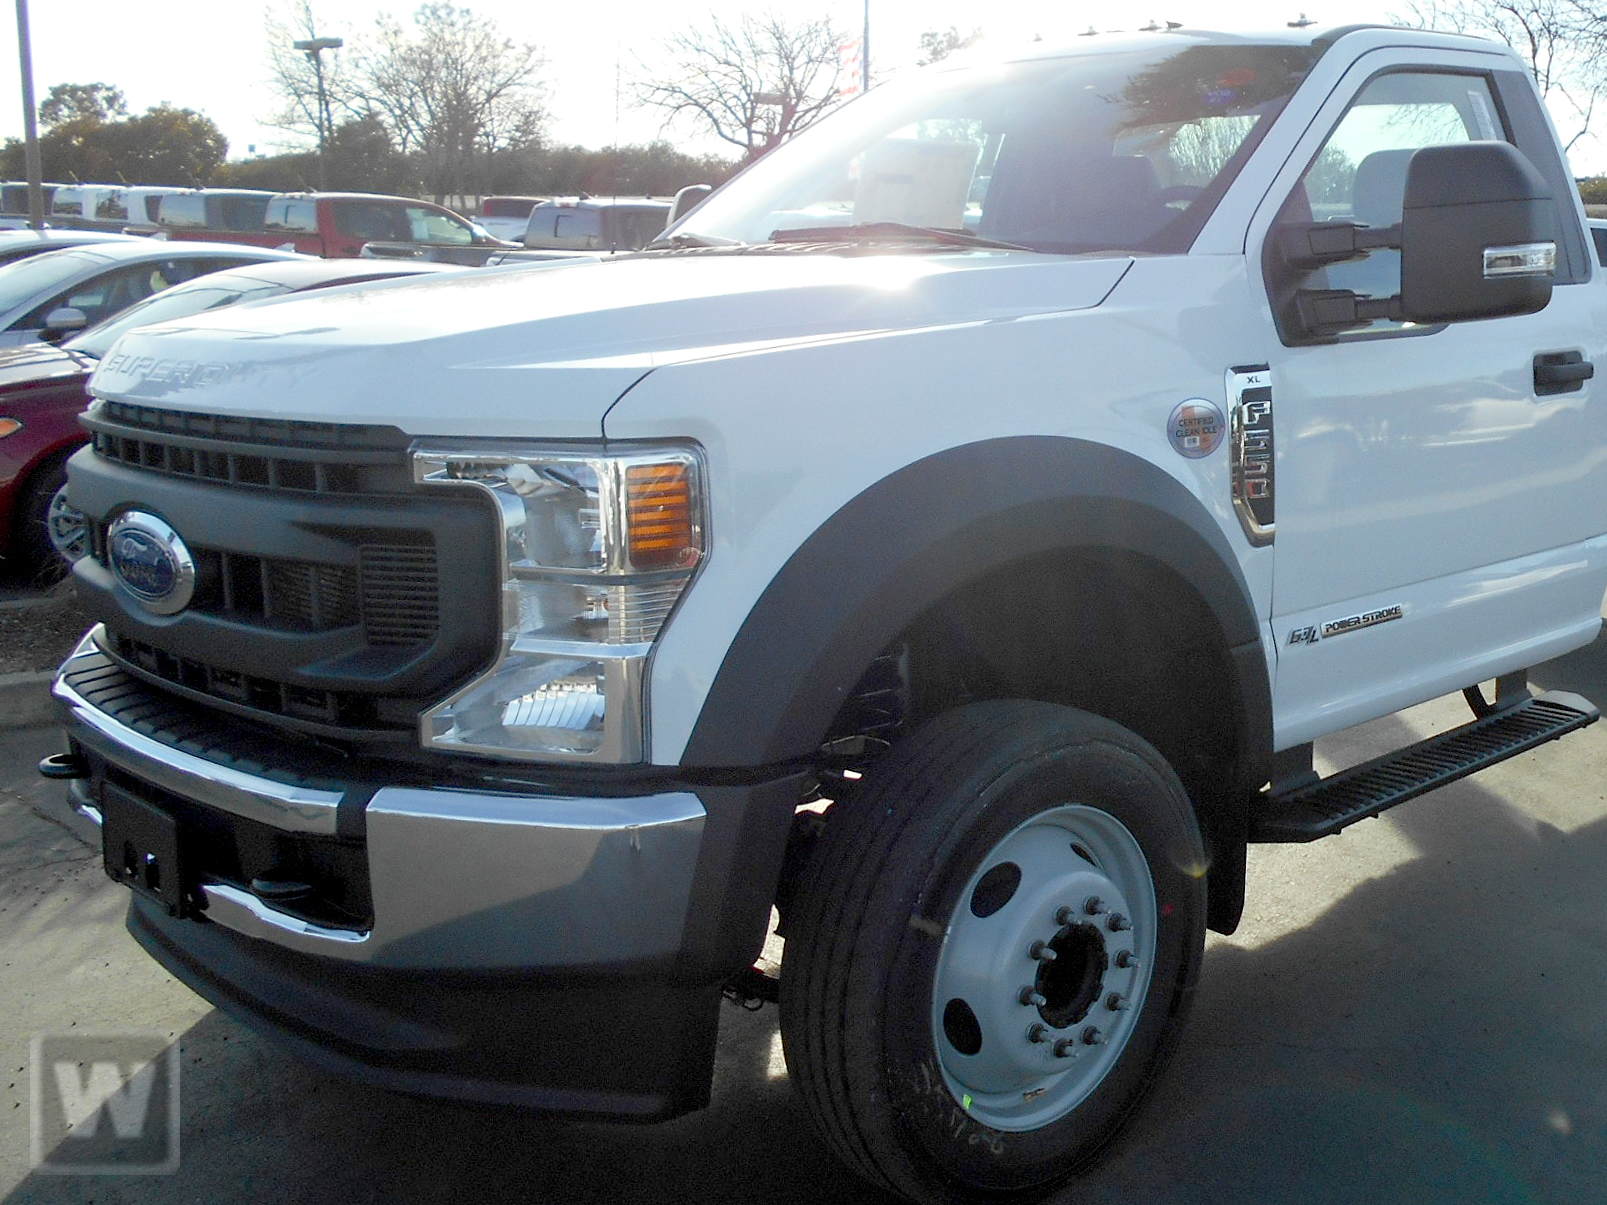 2020 Ford F-550 Regular Cab DRW 4x4, Knapheide Dump Body #20D340 - photo 1